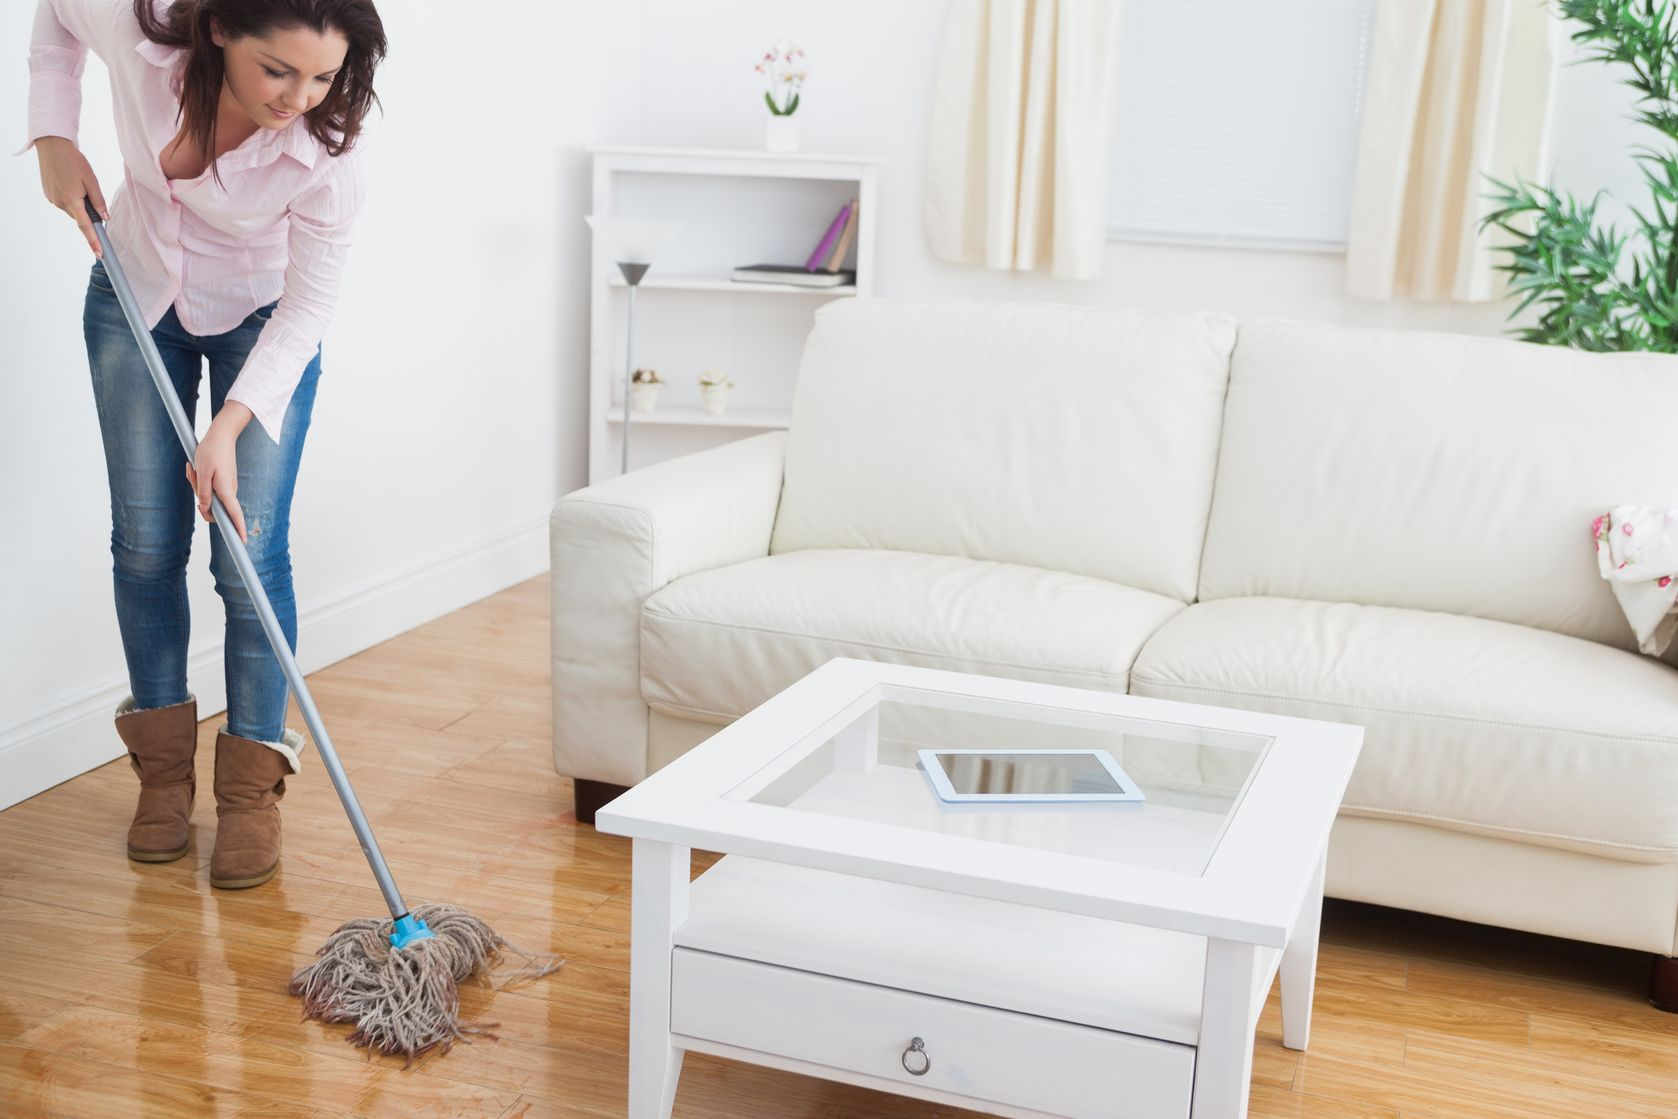 18123799 - young woman  mopping living room floor